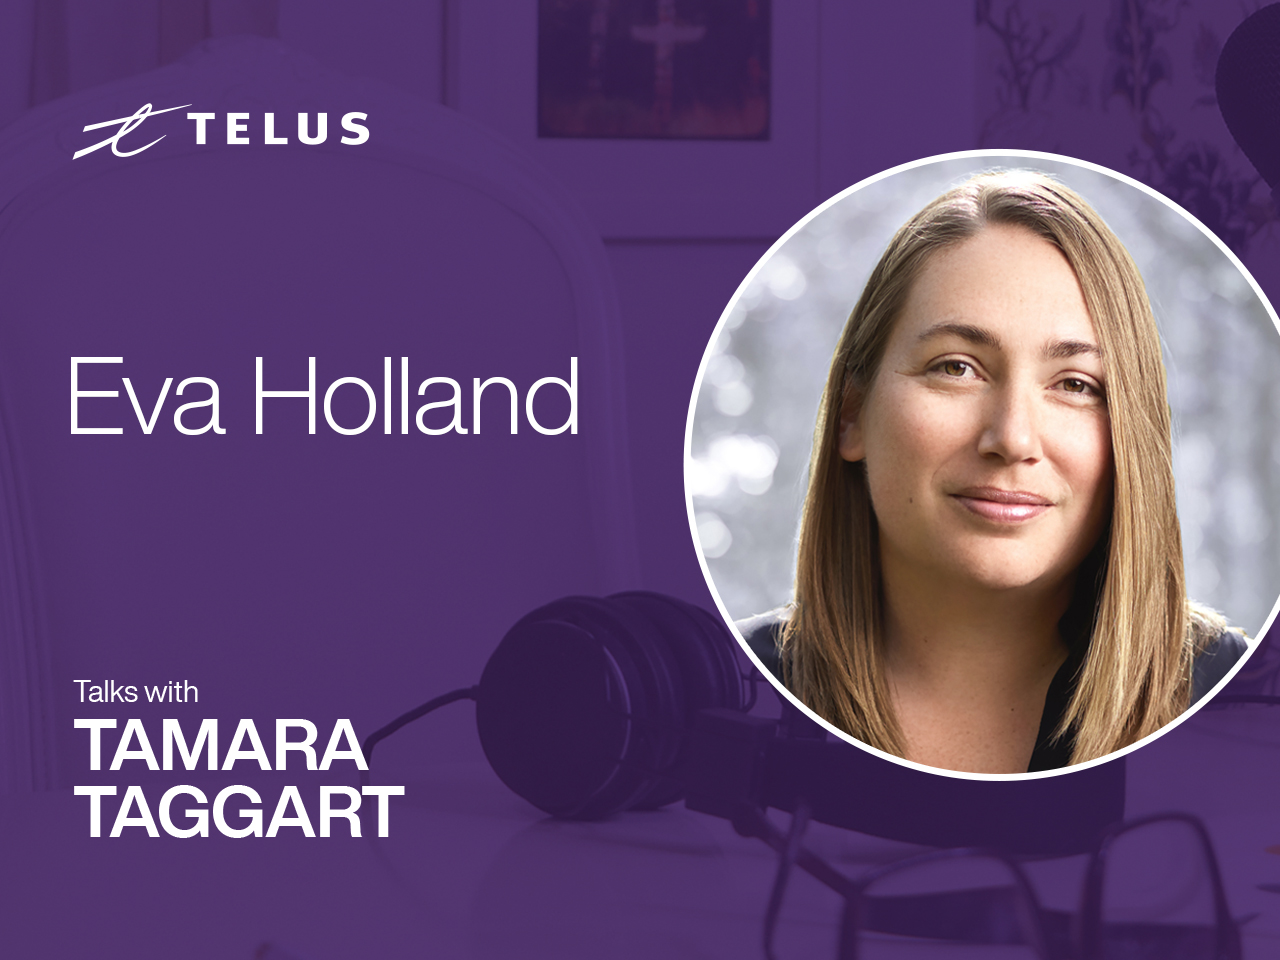 Eva Holland, the author of Nerve: A Personal Journey Through the Science of Fear.